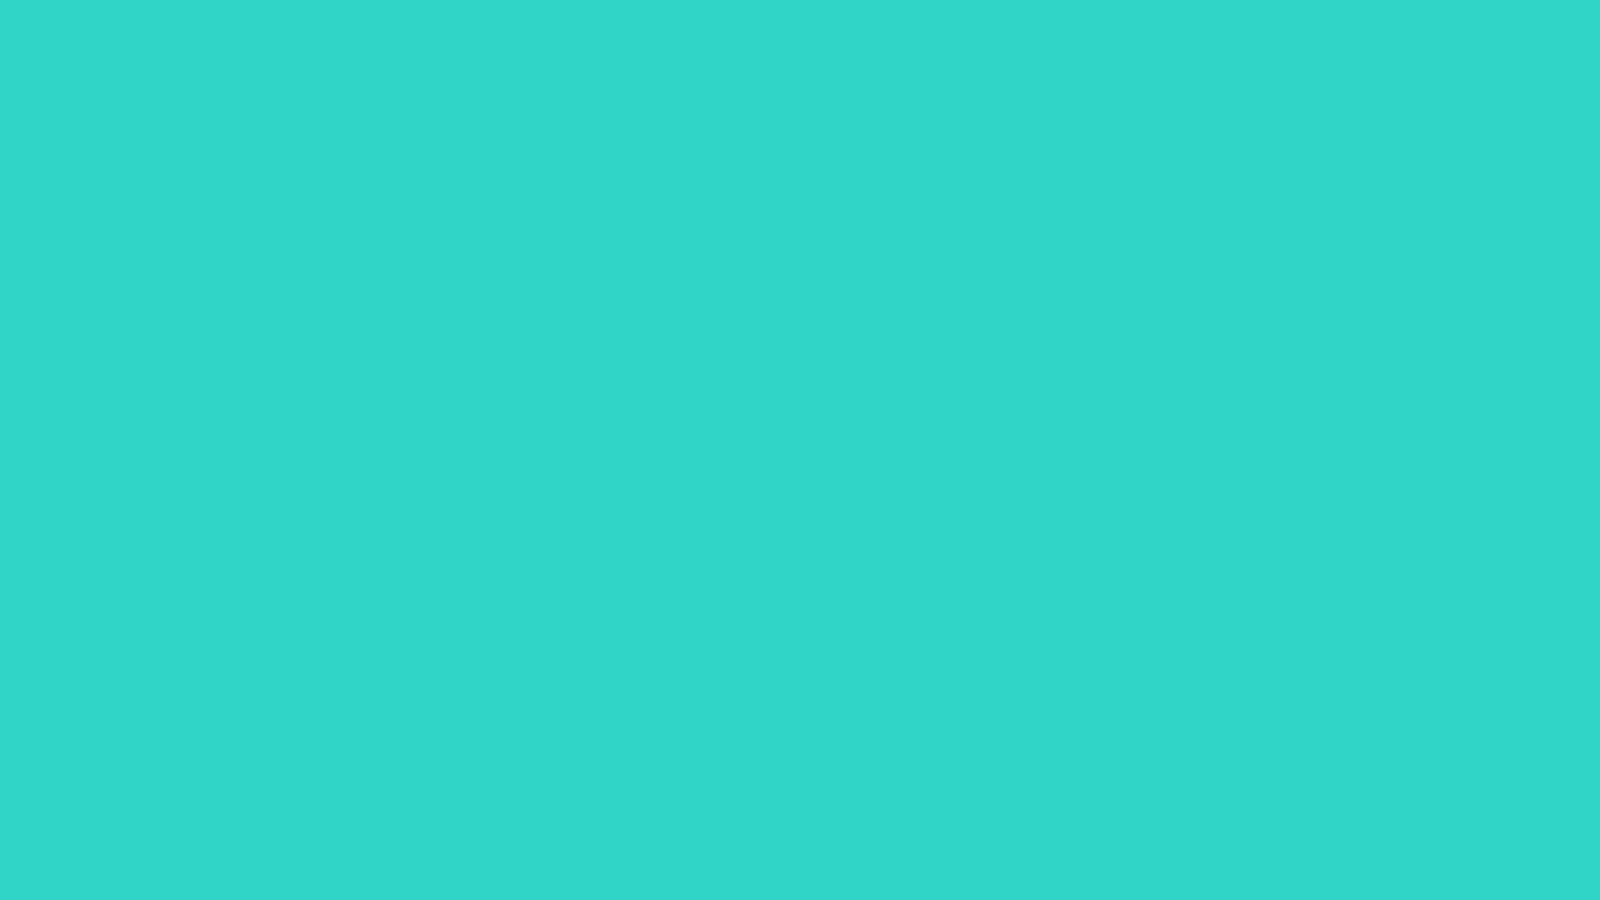 1600x900 Turquoise Solid Color Background